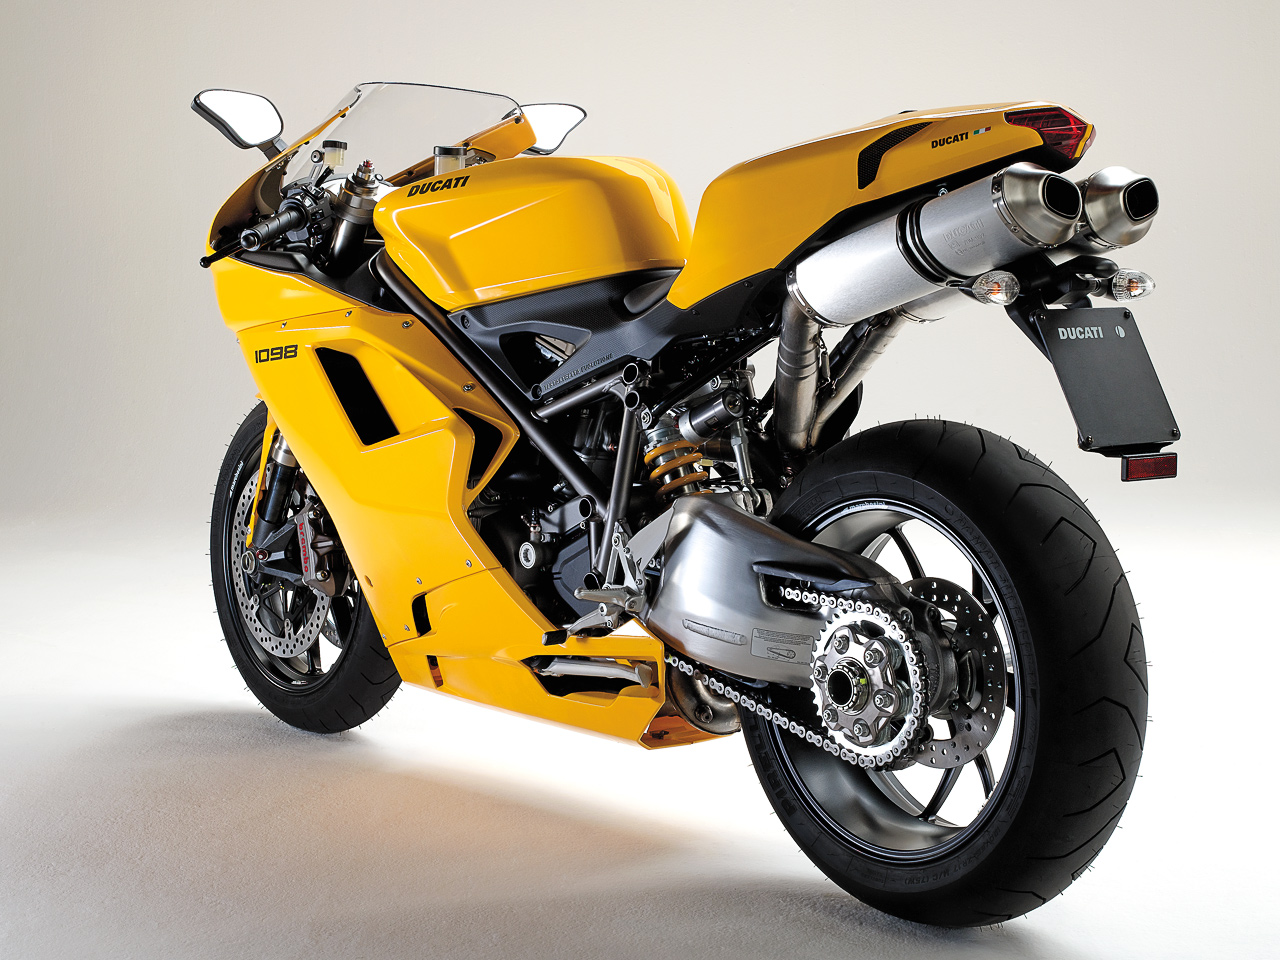 2007 ducati superbike 1098 r pics specs and information. Black Bedroom Furniture Sets. Home Design Ideas